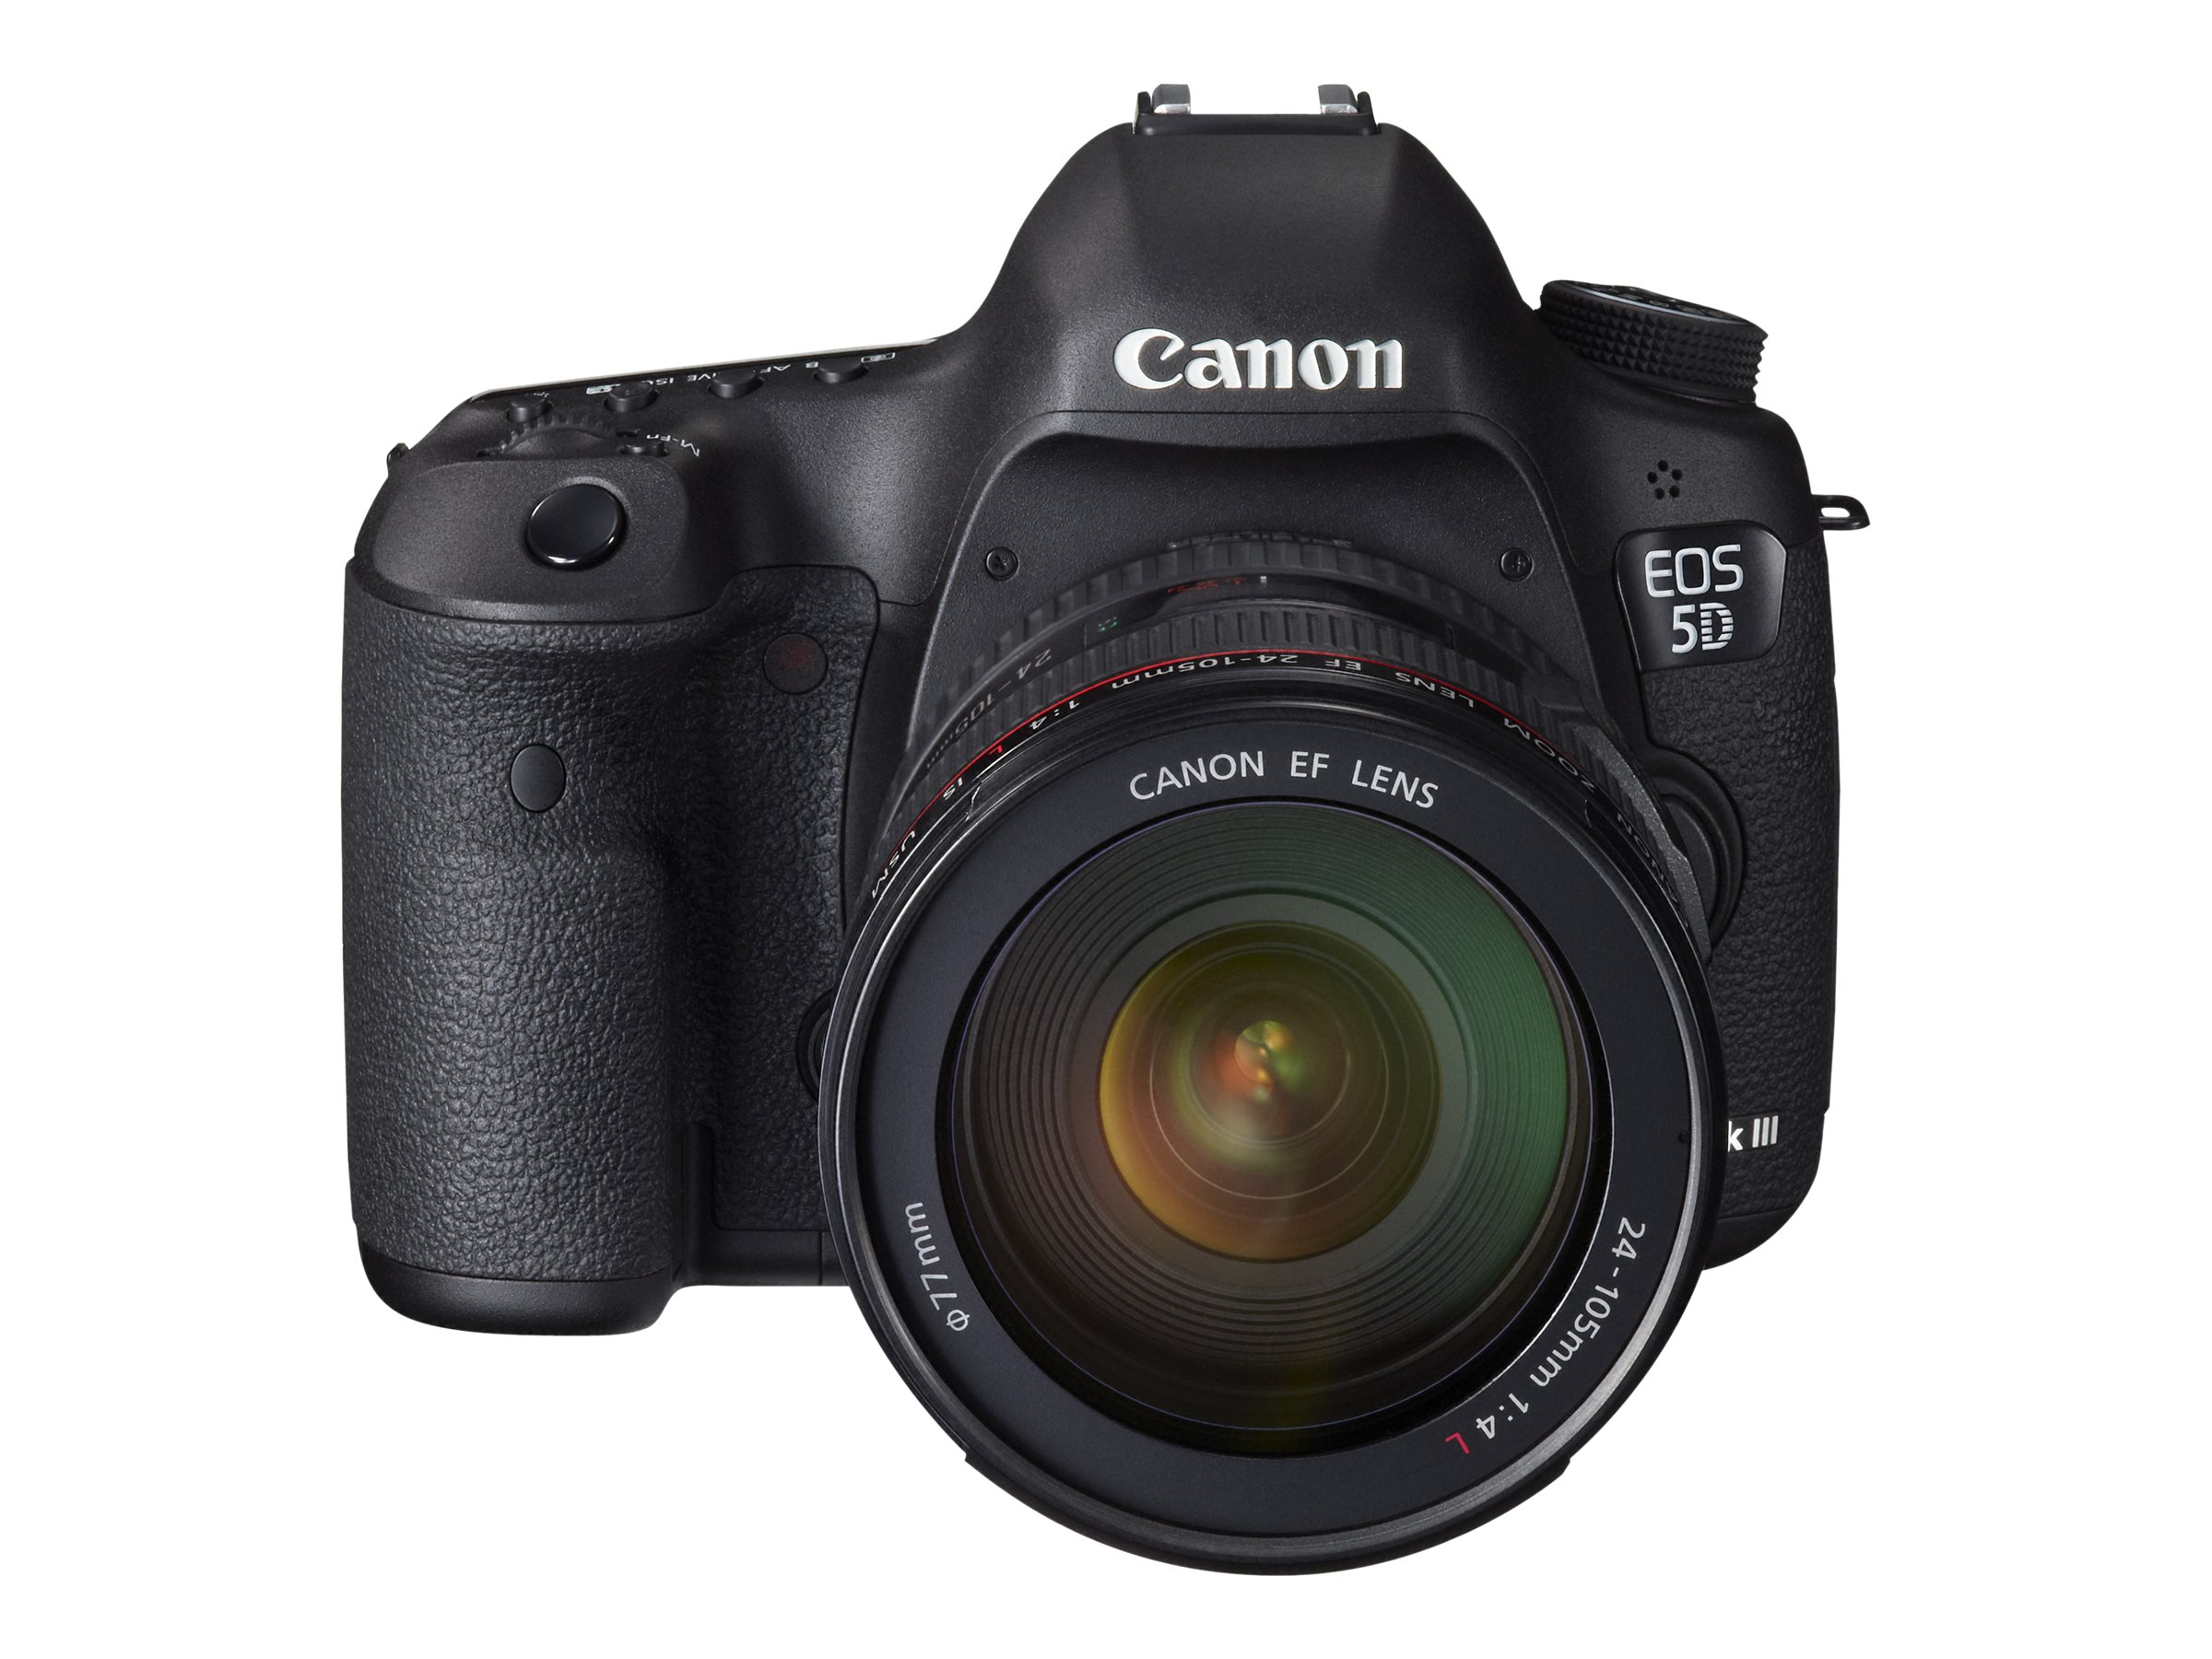 Canon EOS 5D Mark III Digital Camera Kit 24-105mm